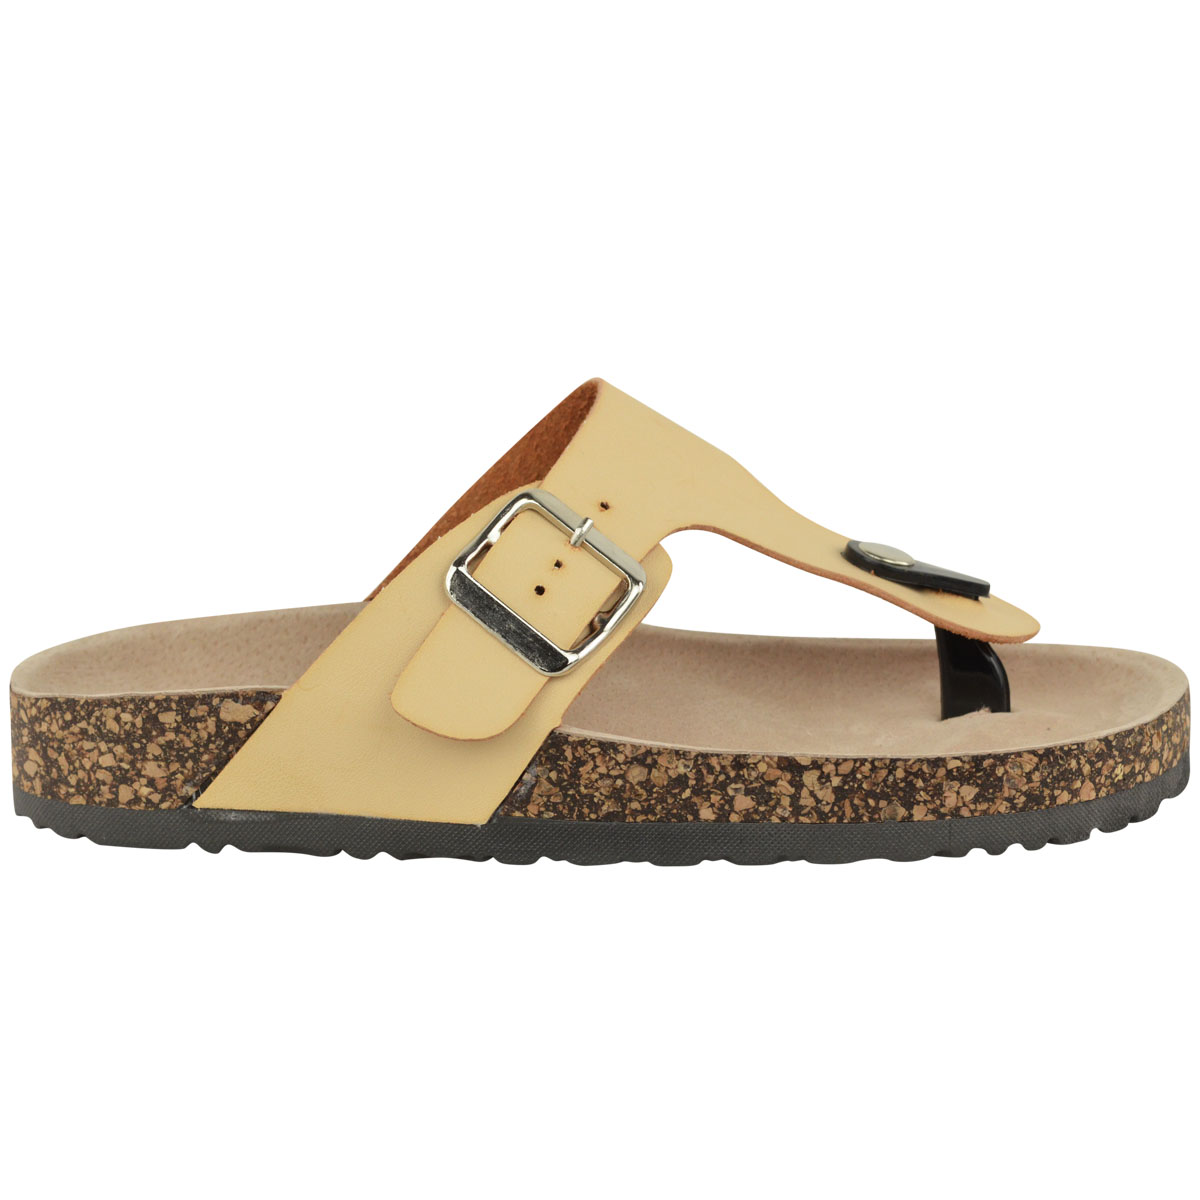 LADIES WOMENS LEATHER FLAT SUMMER COMFORT CUSHION CORK ...